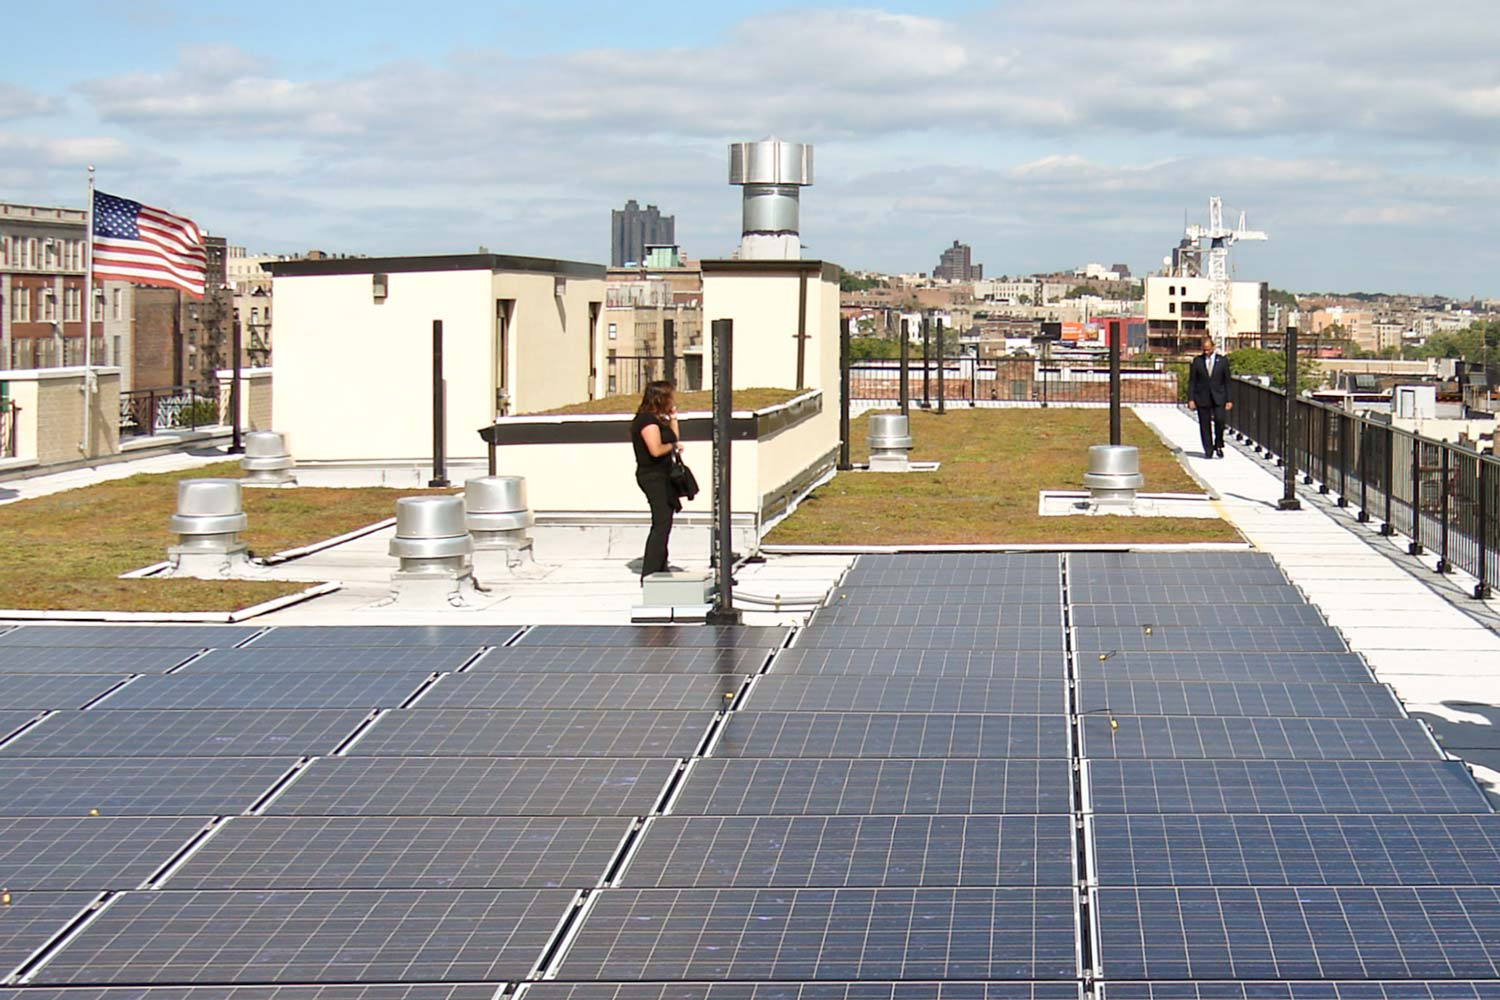 The rooftop harvests rain water and photovoltaic panels produce electricity for lighting public halls.